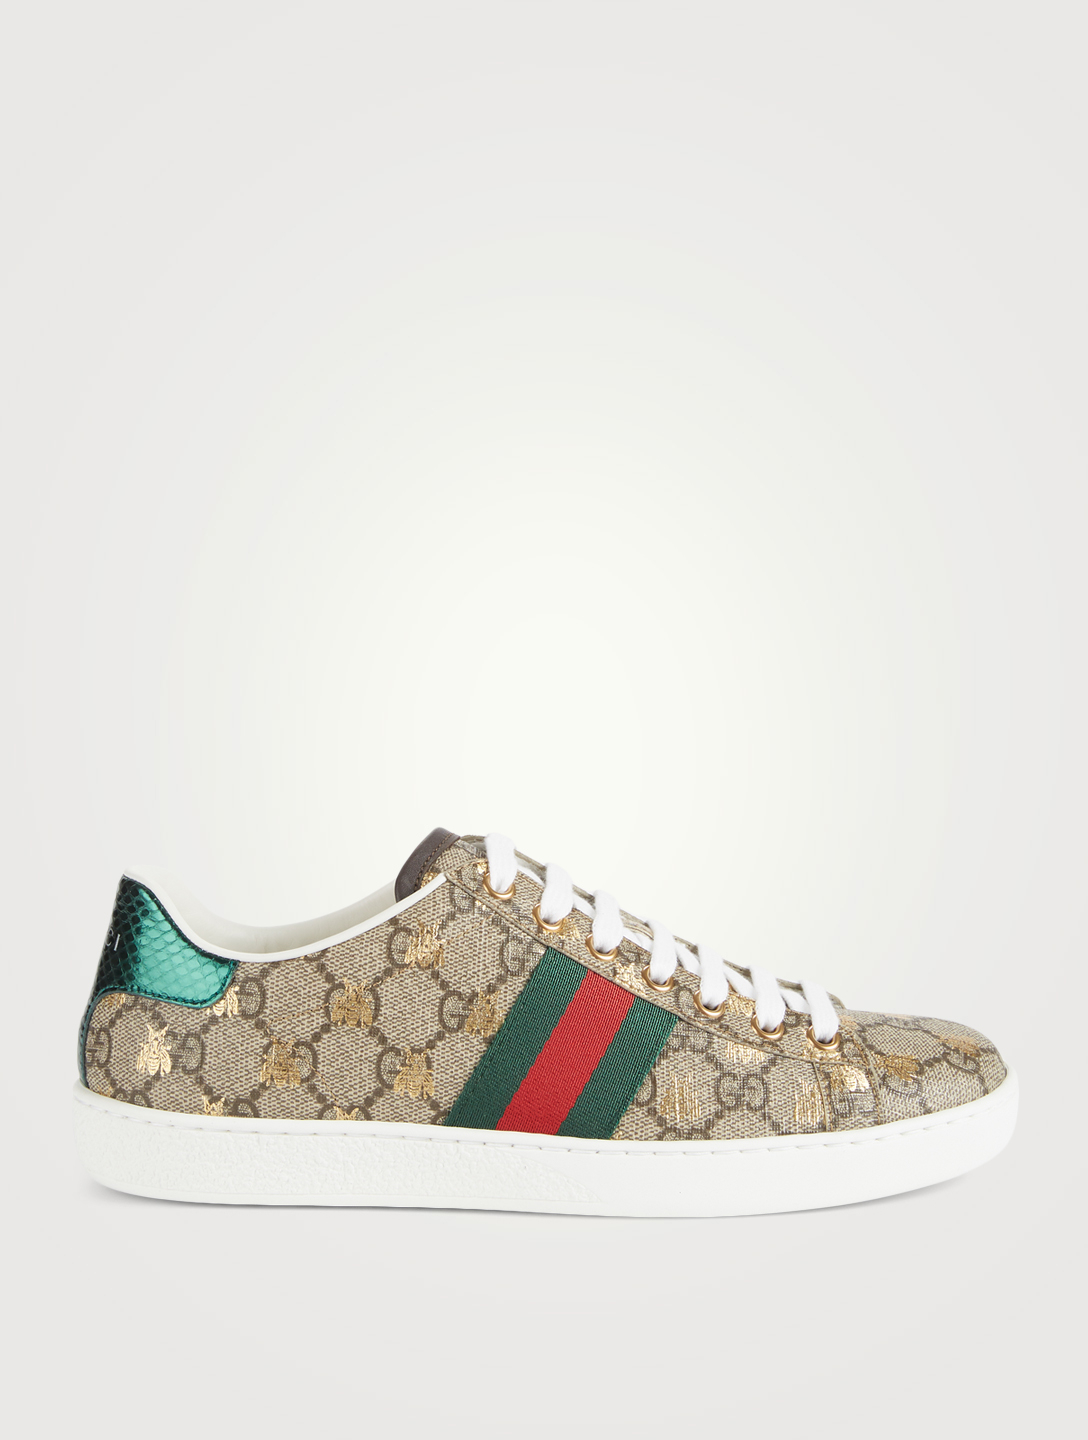 GUCCI Ace GG Supreme Sneakers With Bees Women's Neutral